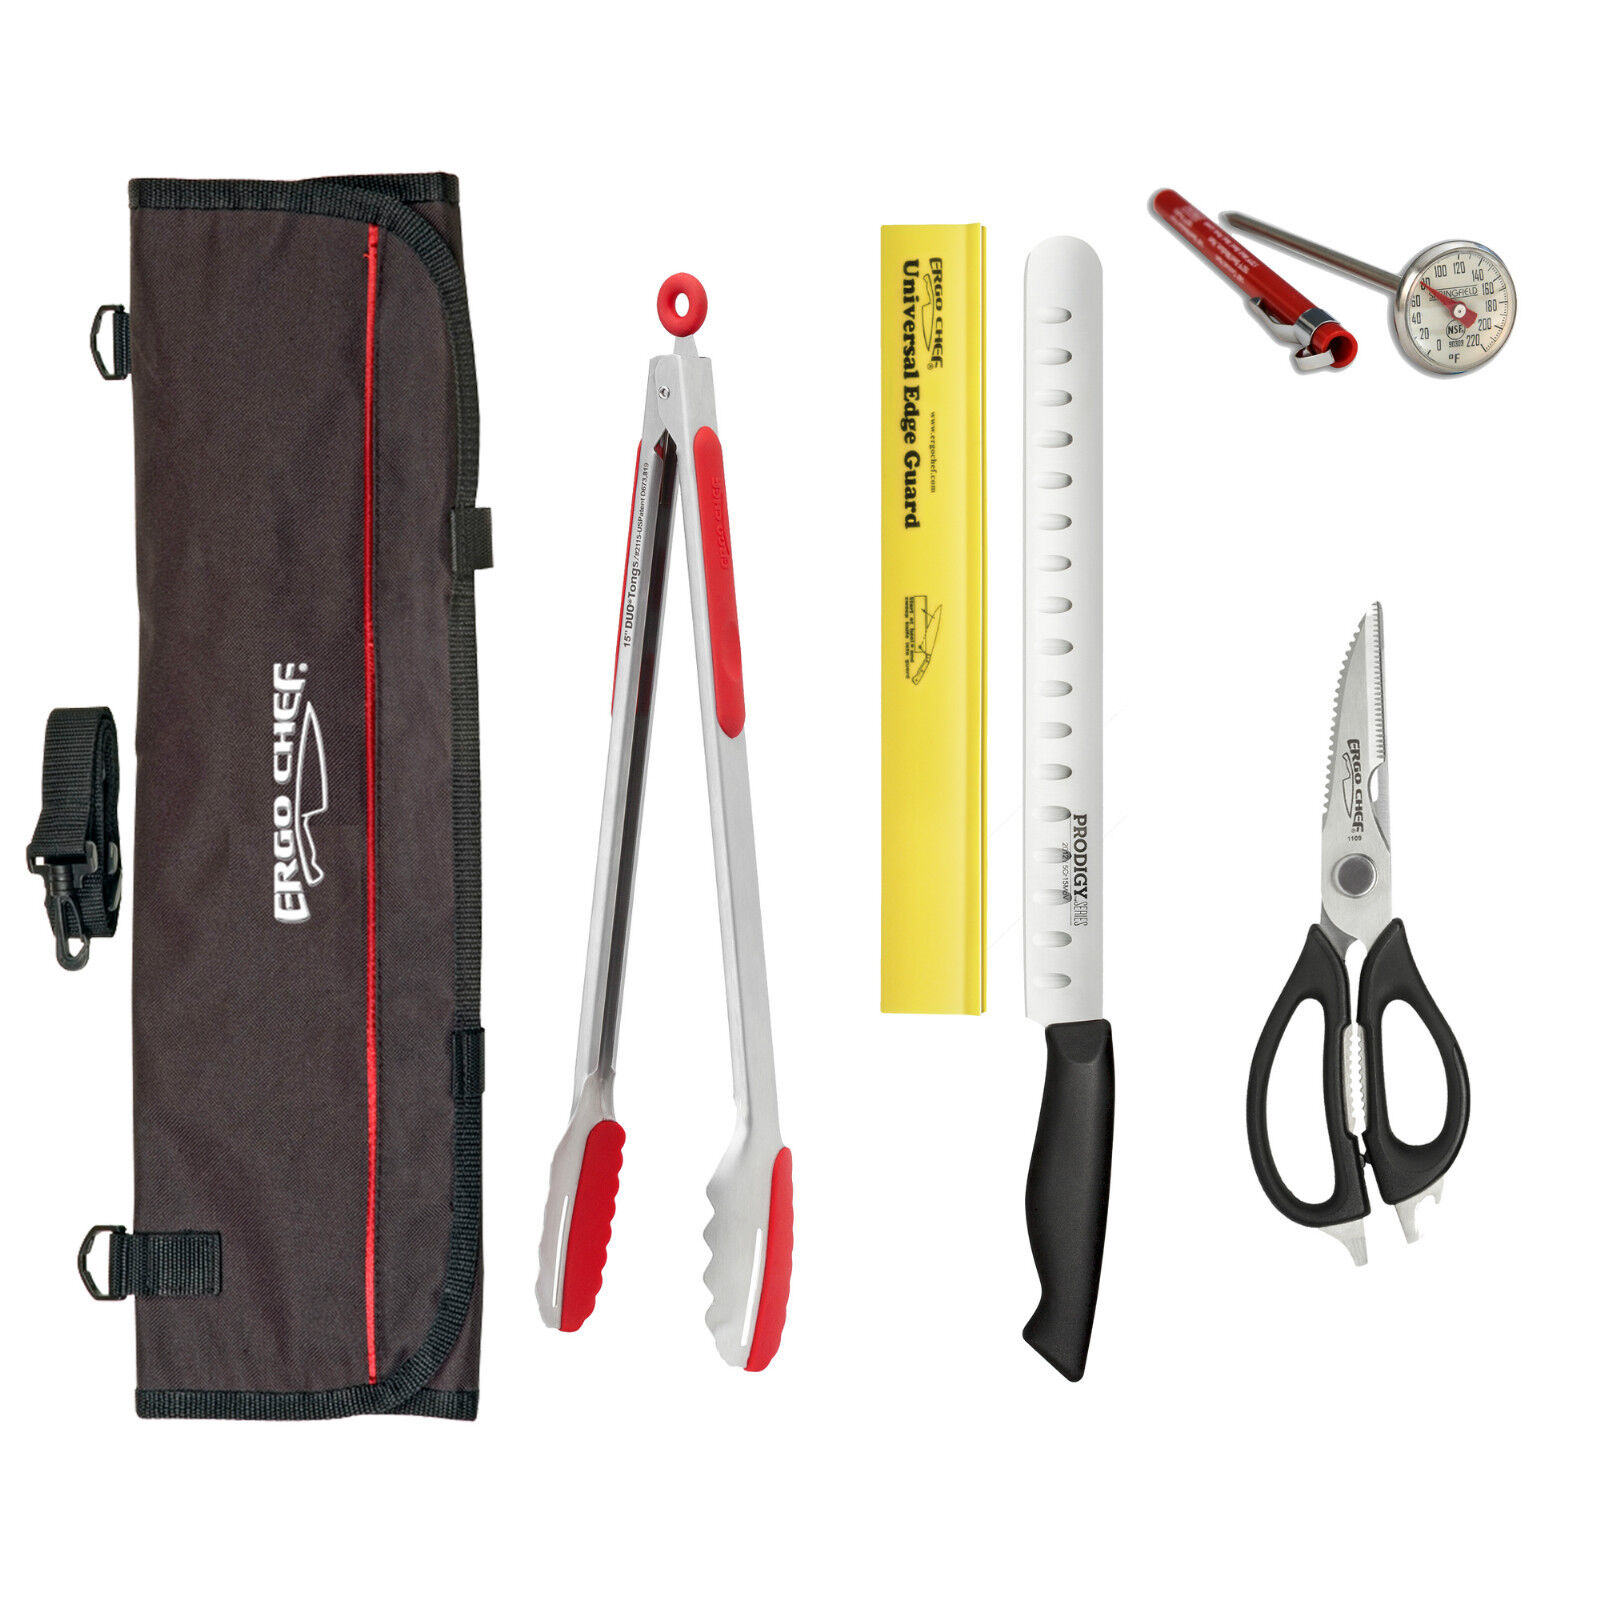 BBQ kit knife & tool set Grill tongs 12  slicer thermometer shears knife bag 6pc